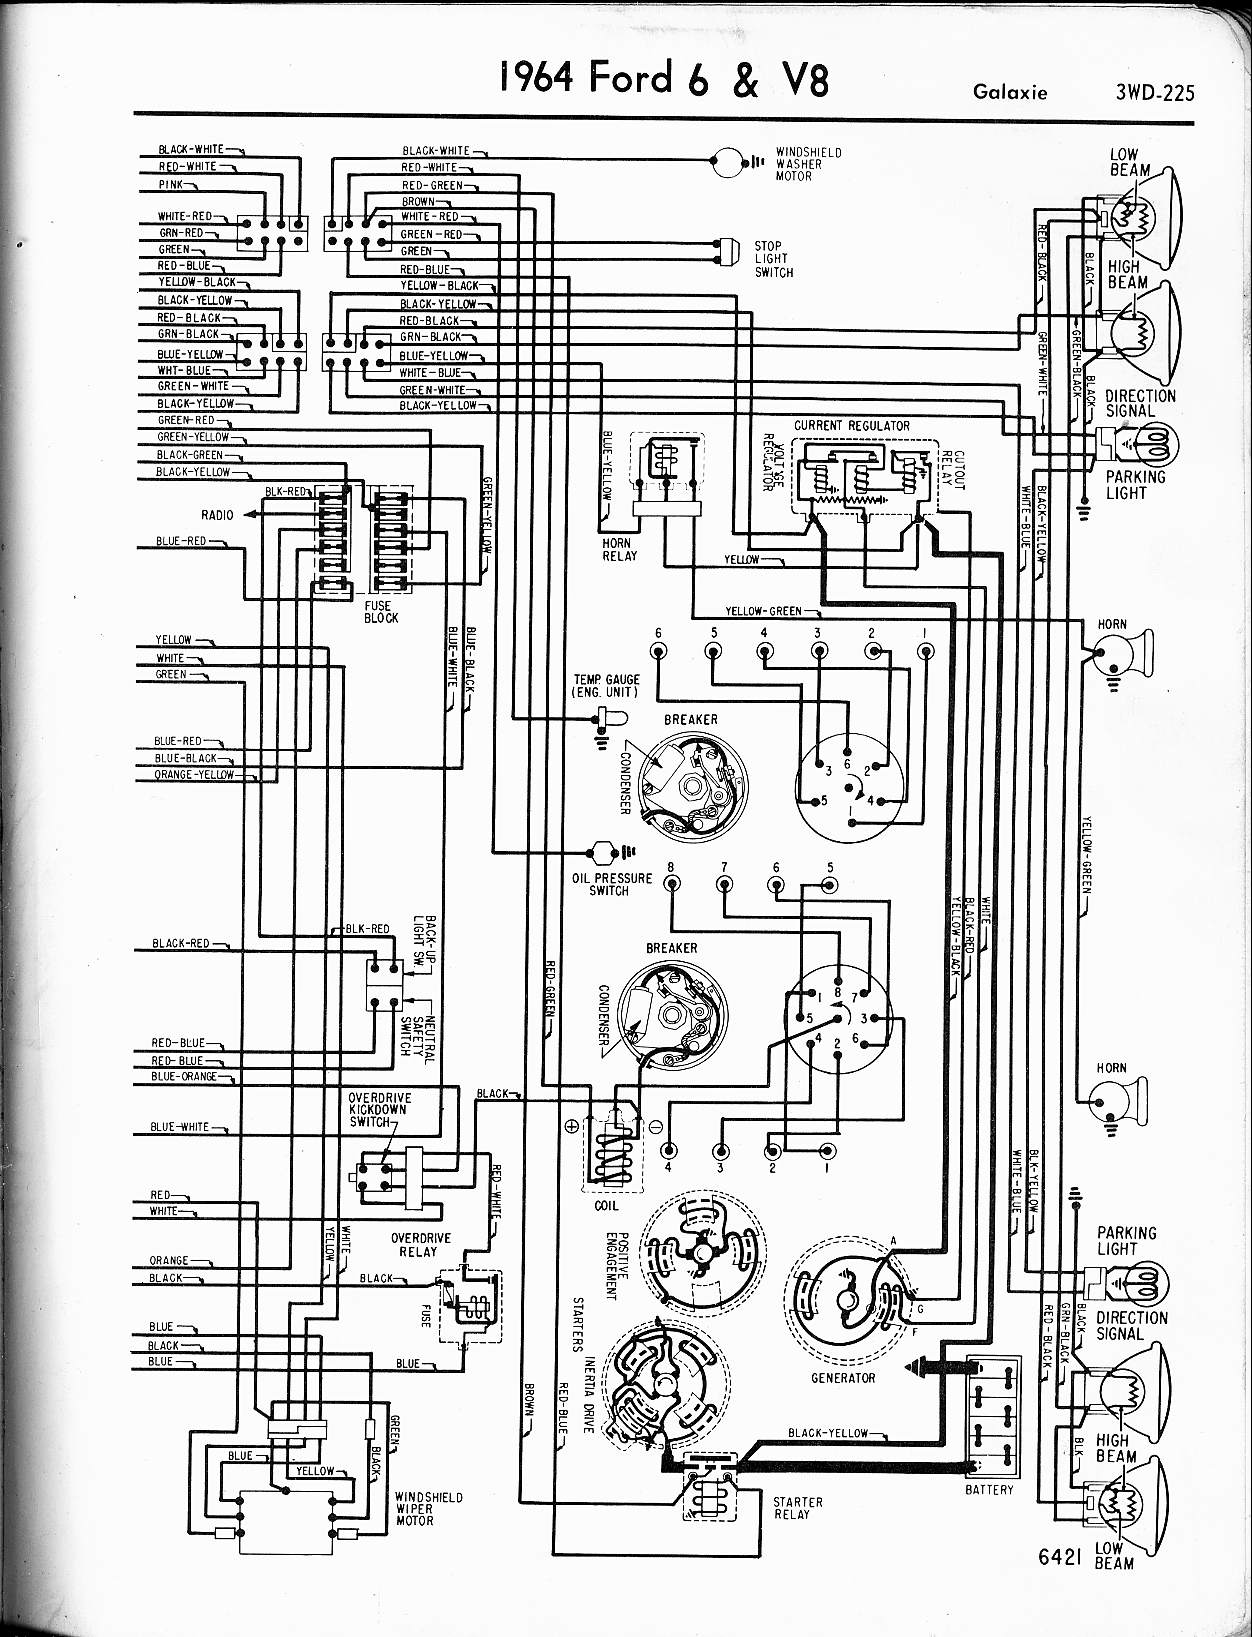 Awe Inspiring 1964 Ford Ranchero Ignition Wiring Diagram Wiring Diagram Wiring Digital Resources Cettecompassionincorg